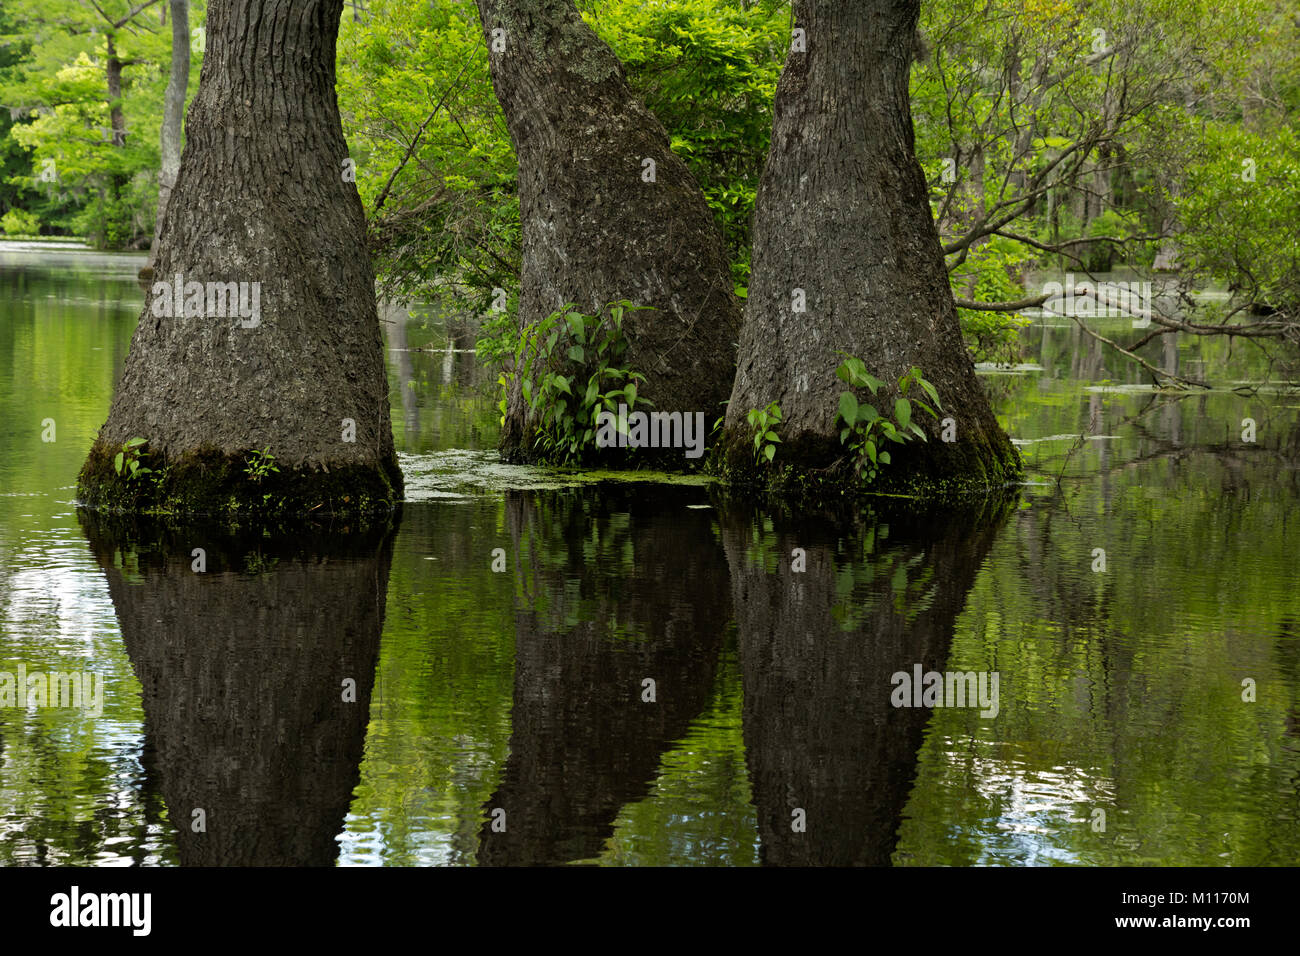 NC01452--00...NORTH CAROLINA - Graceful tupelo gum trees rising out of the cypress swamp and reflecting in the still - Stock Image